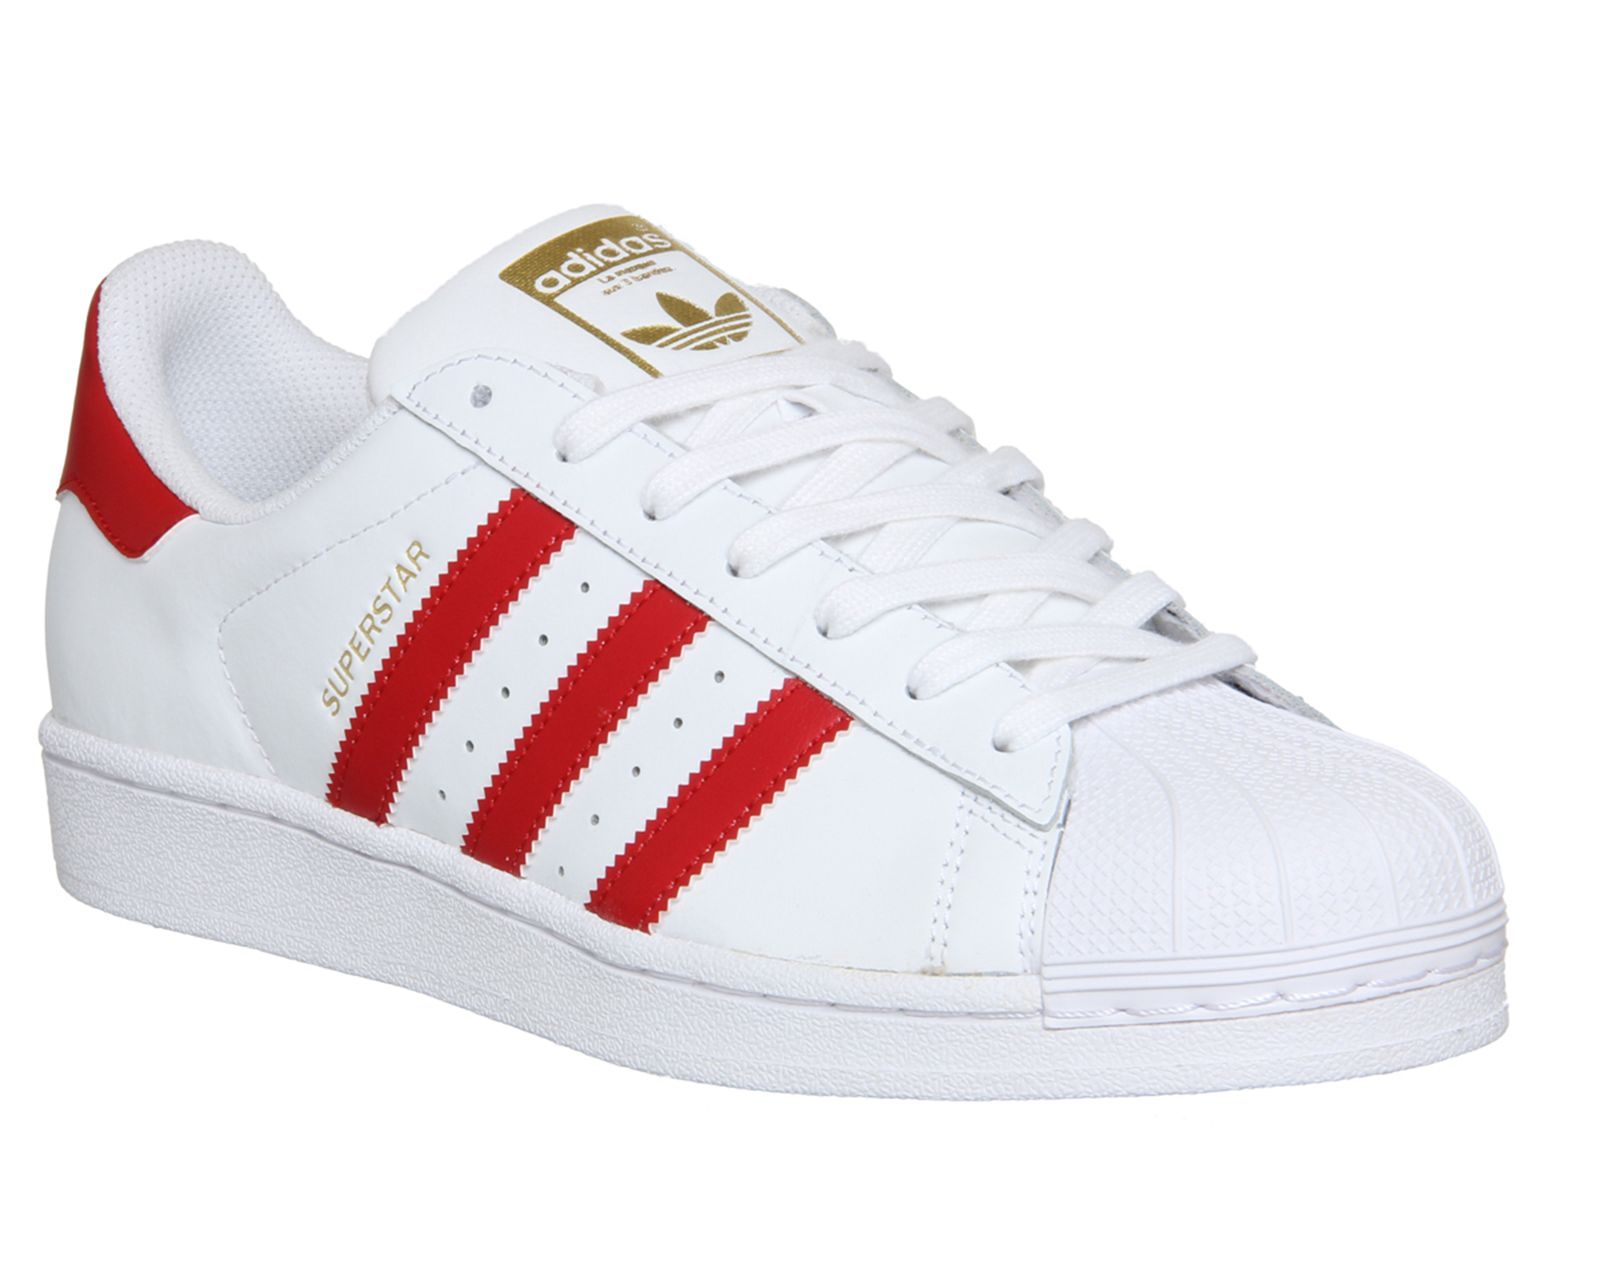 Adidas Superstar 1 White Scarlet - His trainers